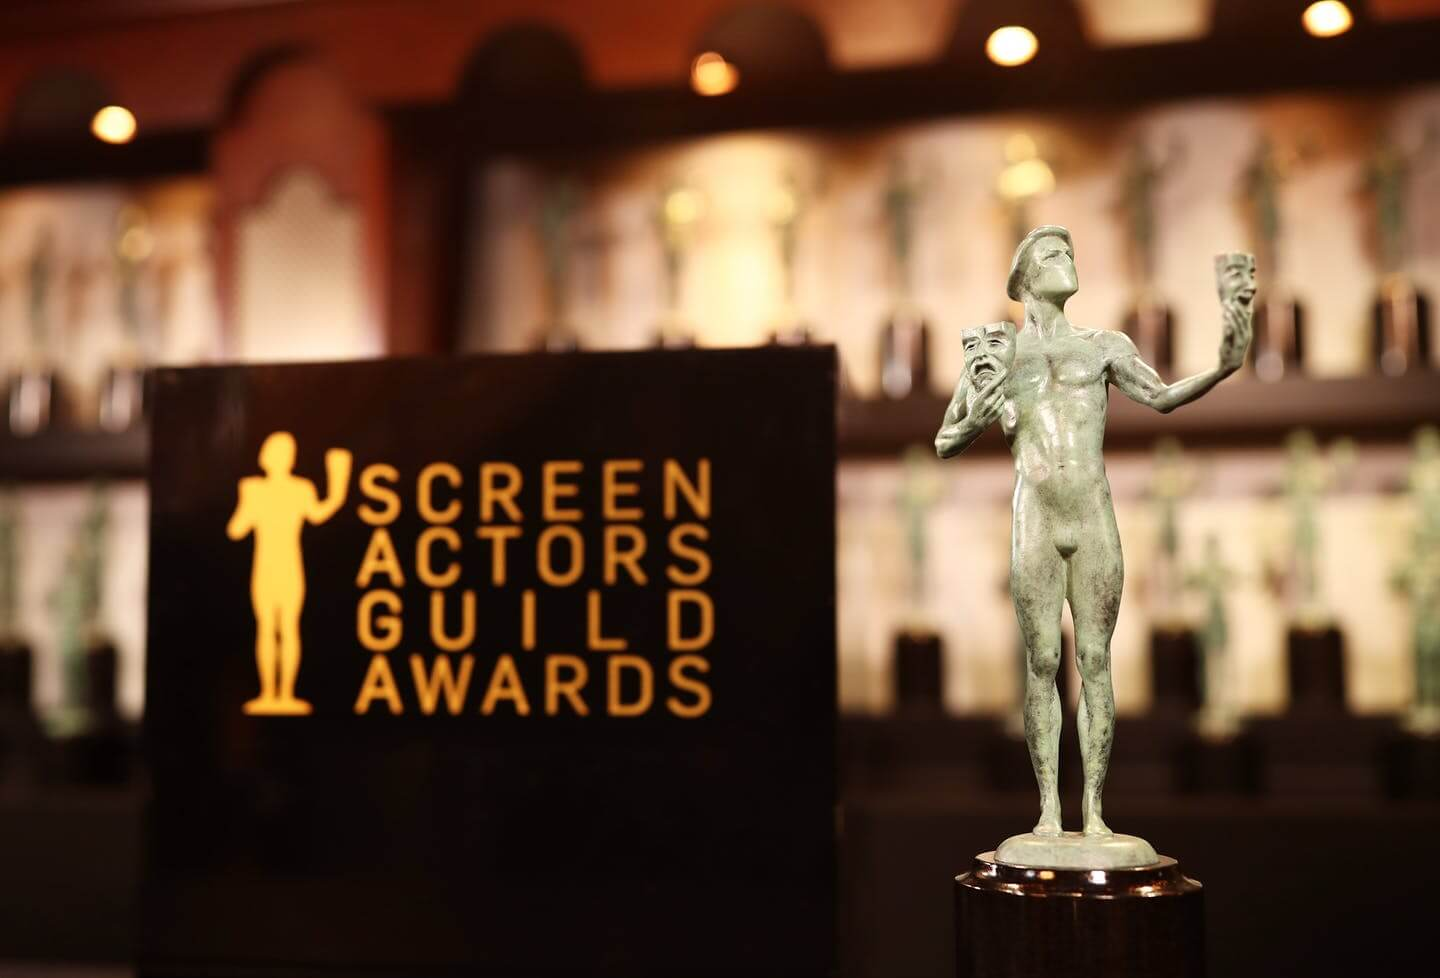 SAG awards 2018: The full winners list | The Stremio Blog